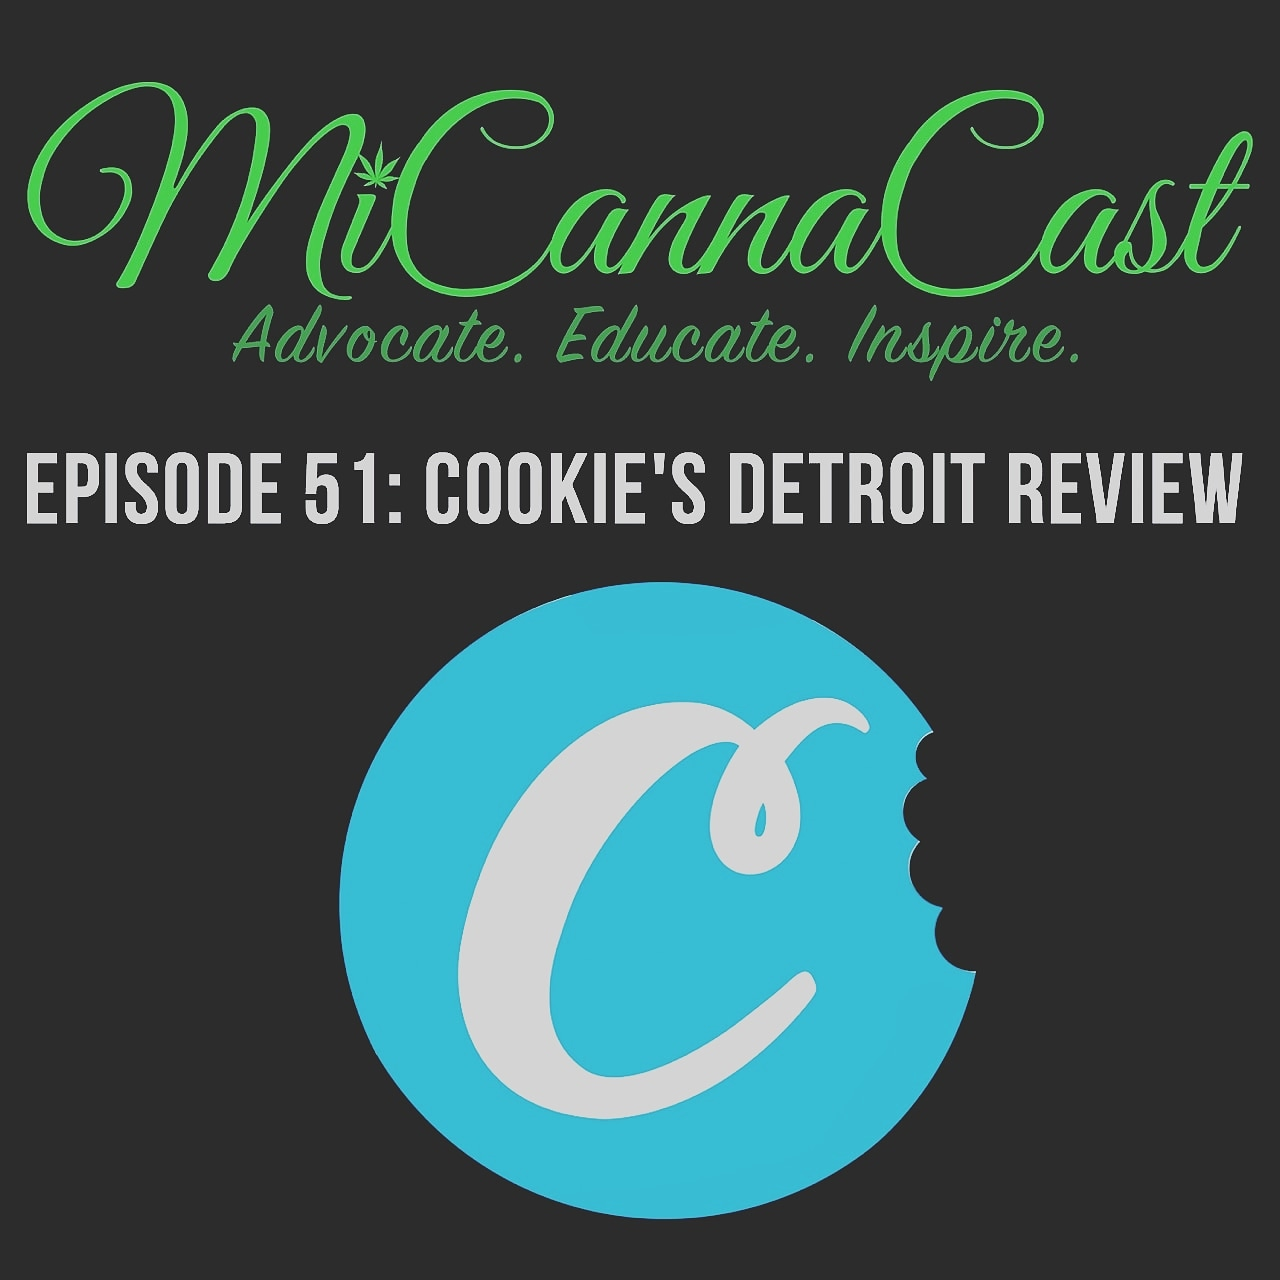 Cookies Detroit Review